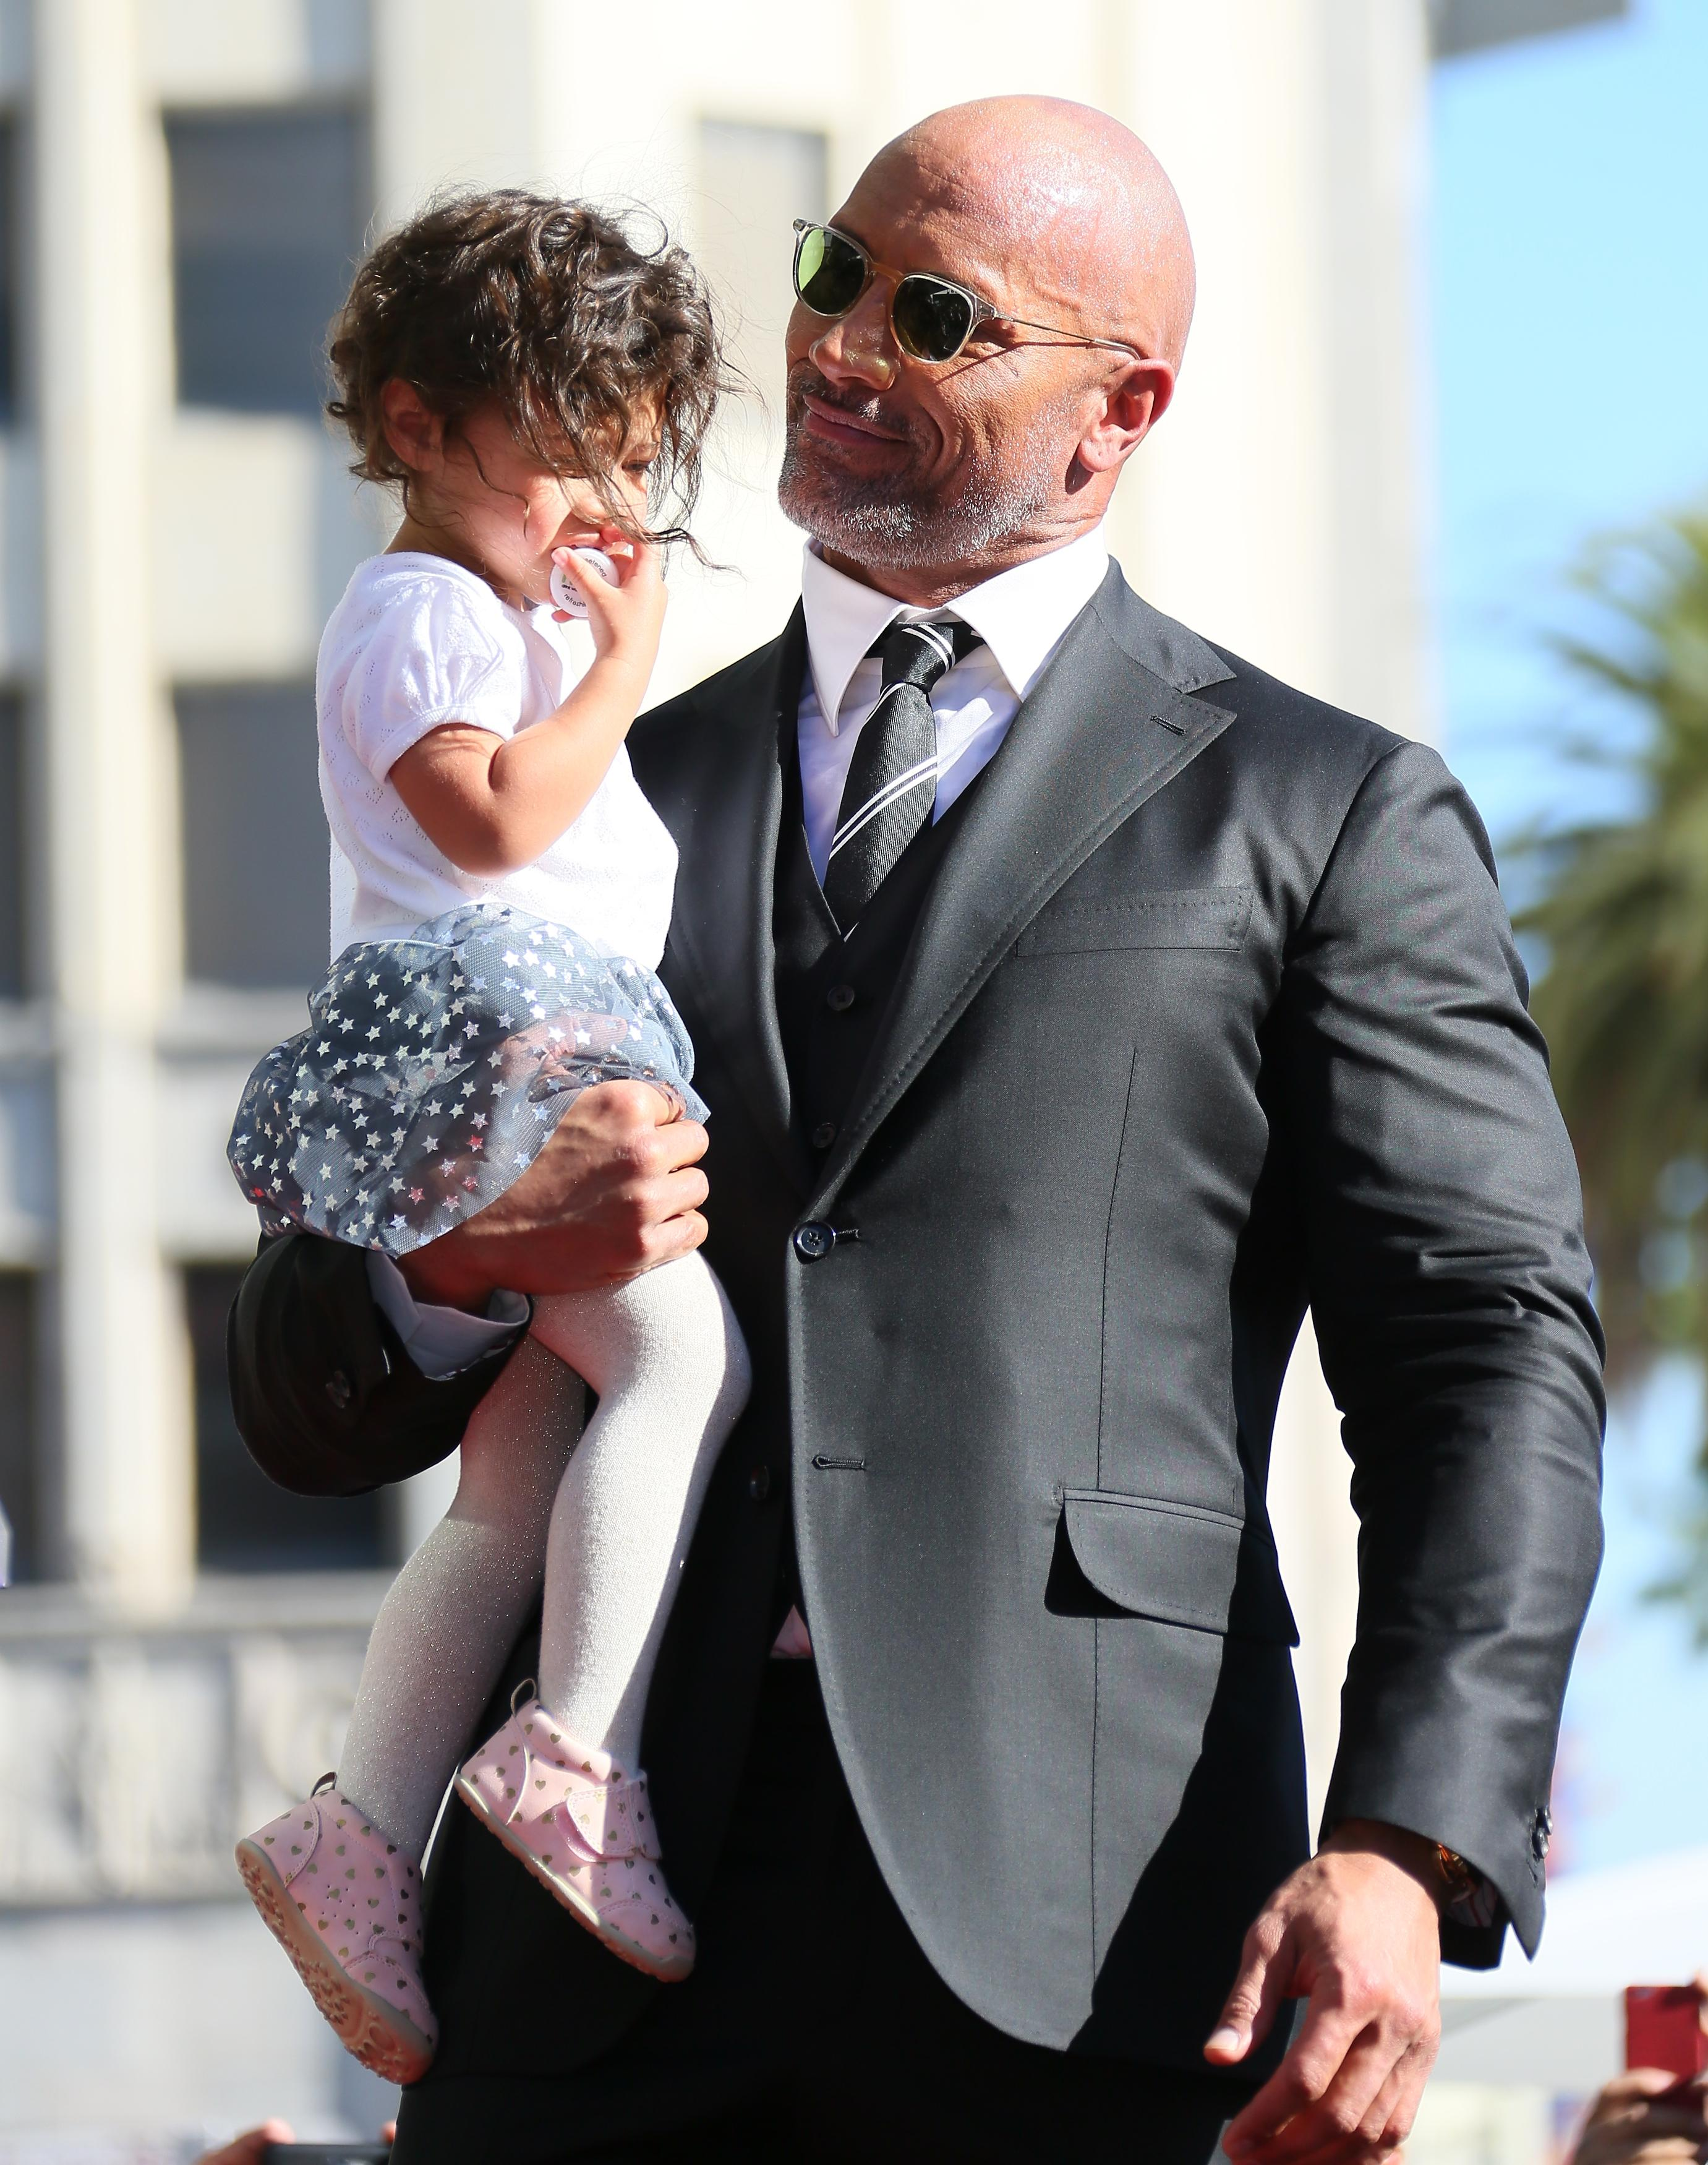 Dwayne The Rock Johnson Shared the Sweetest First Photo of His New Daughter